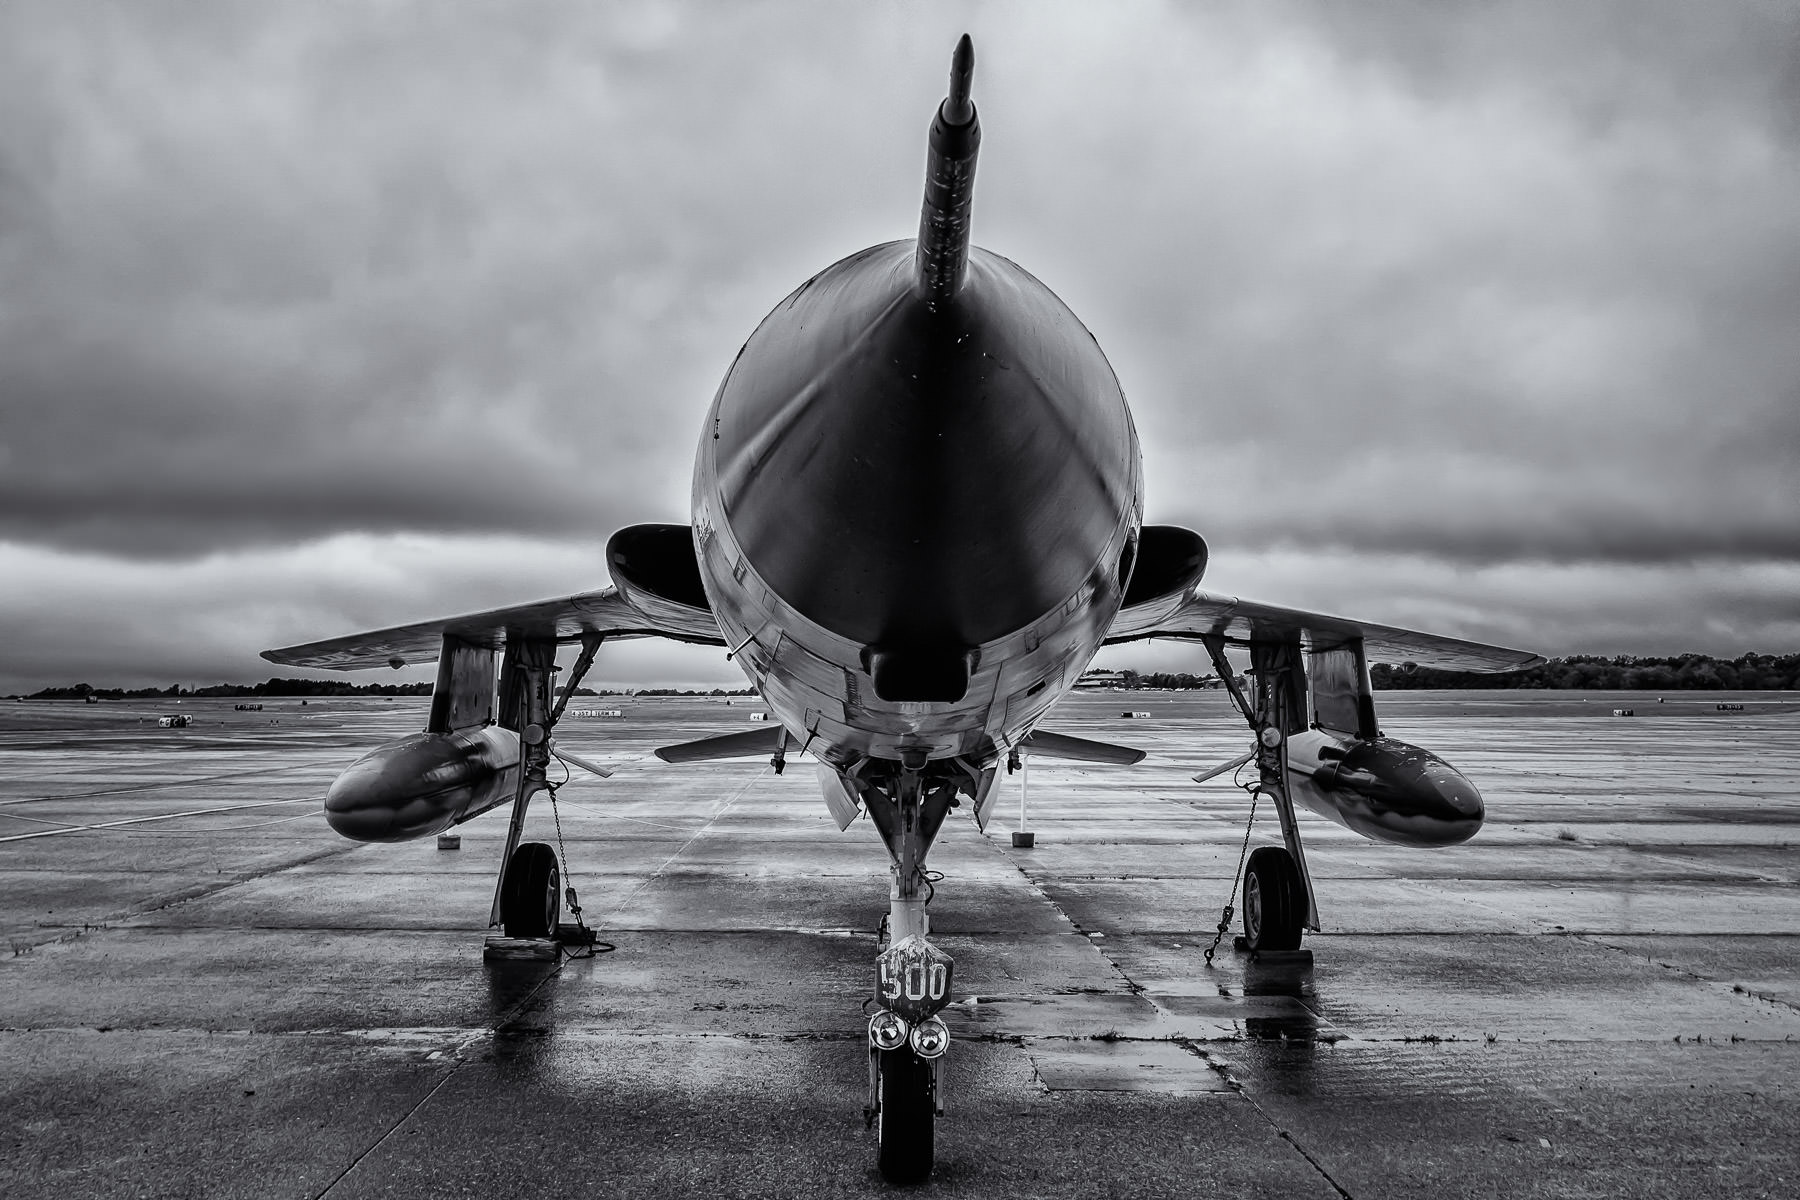 """A Republic F-105D-10-RE """"Thunderchief"""" belonging to the Historic Aviation Memorial Museum at Tyler, Texas' Pounds Regional Airport."""